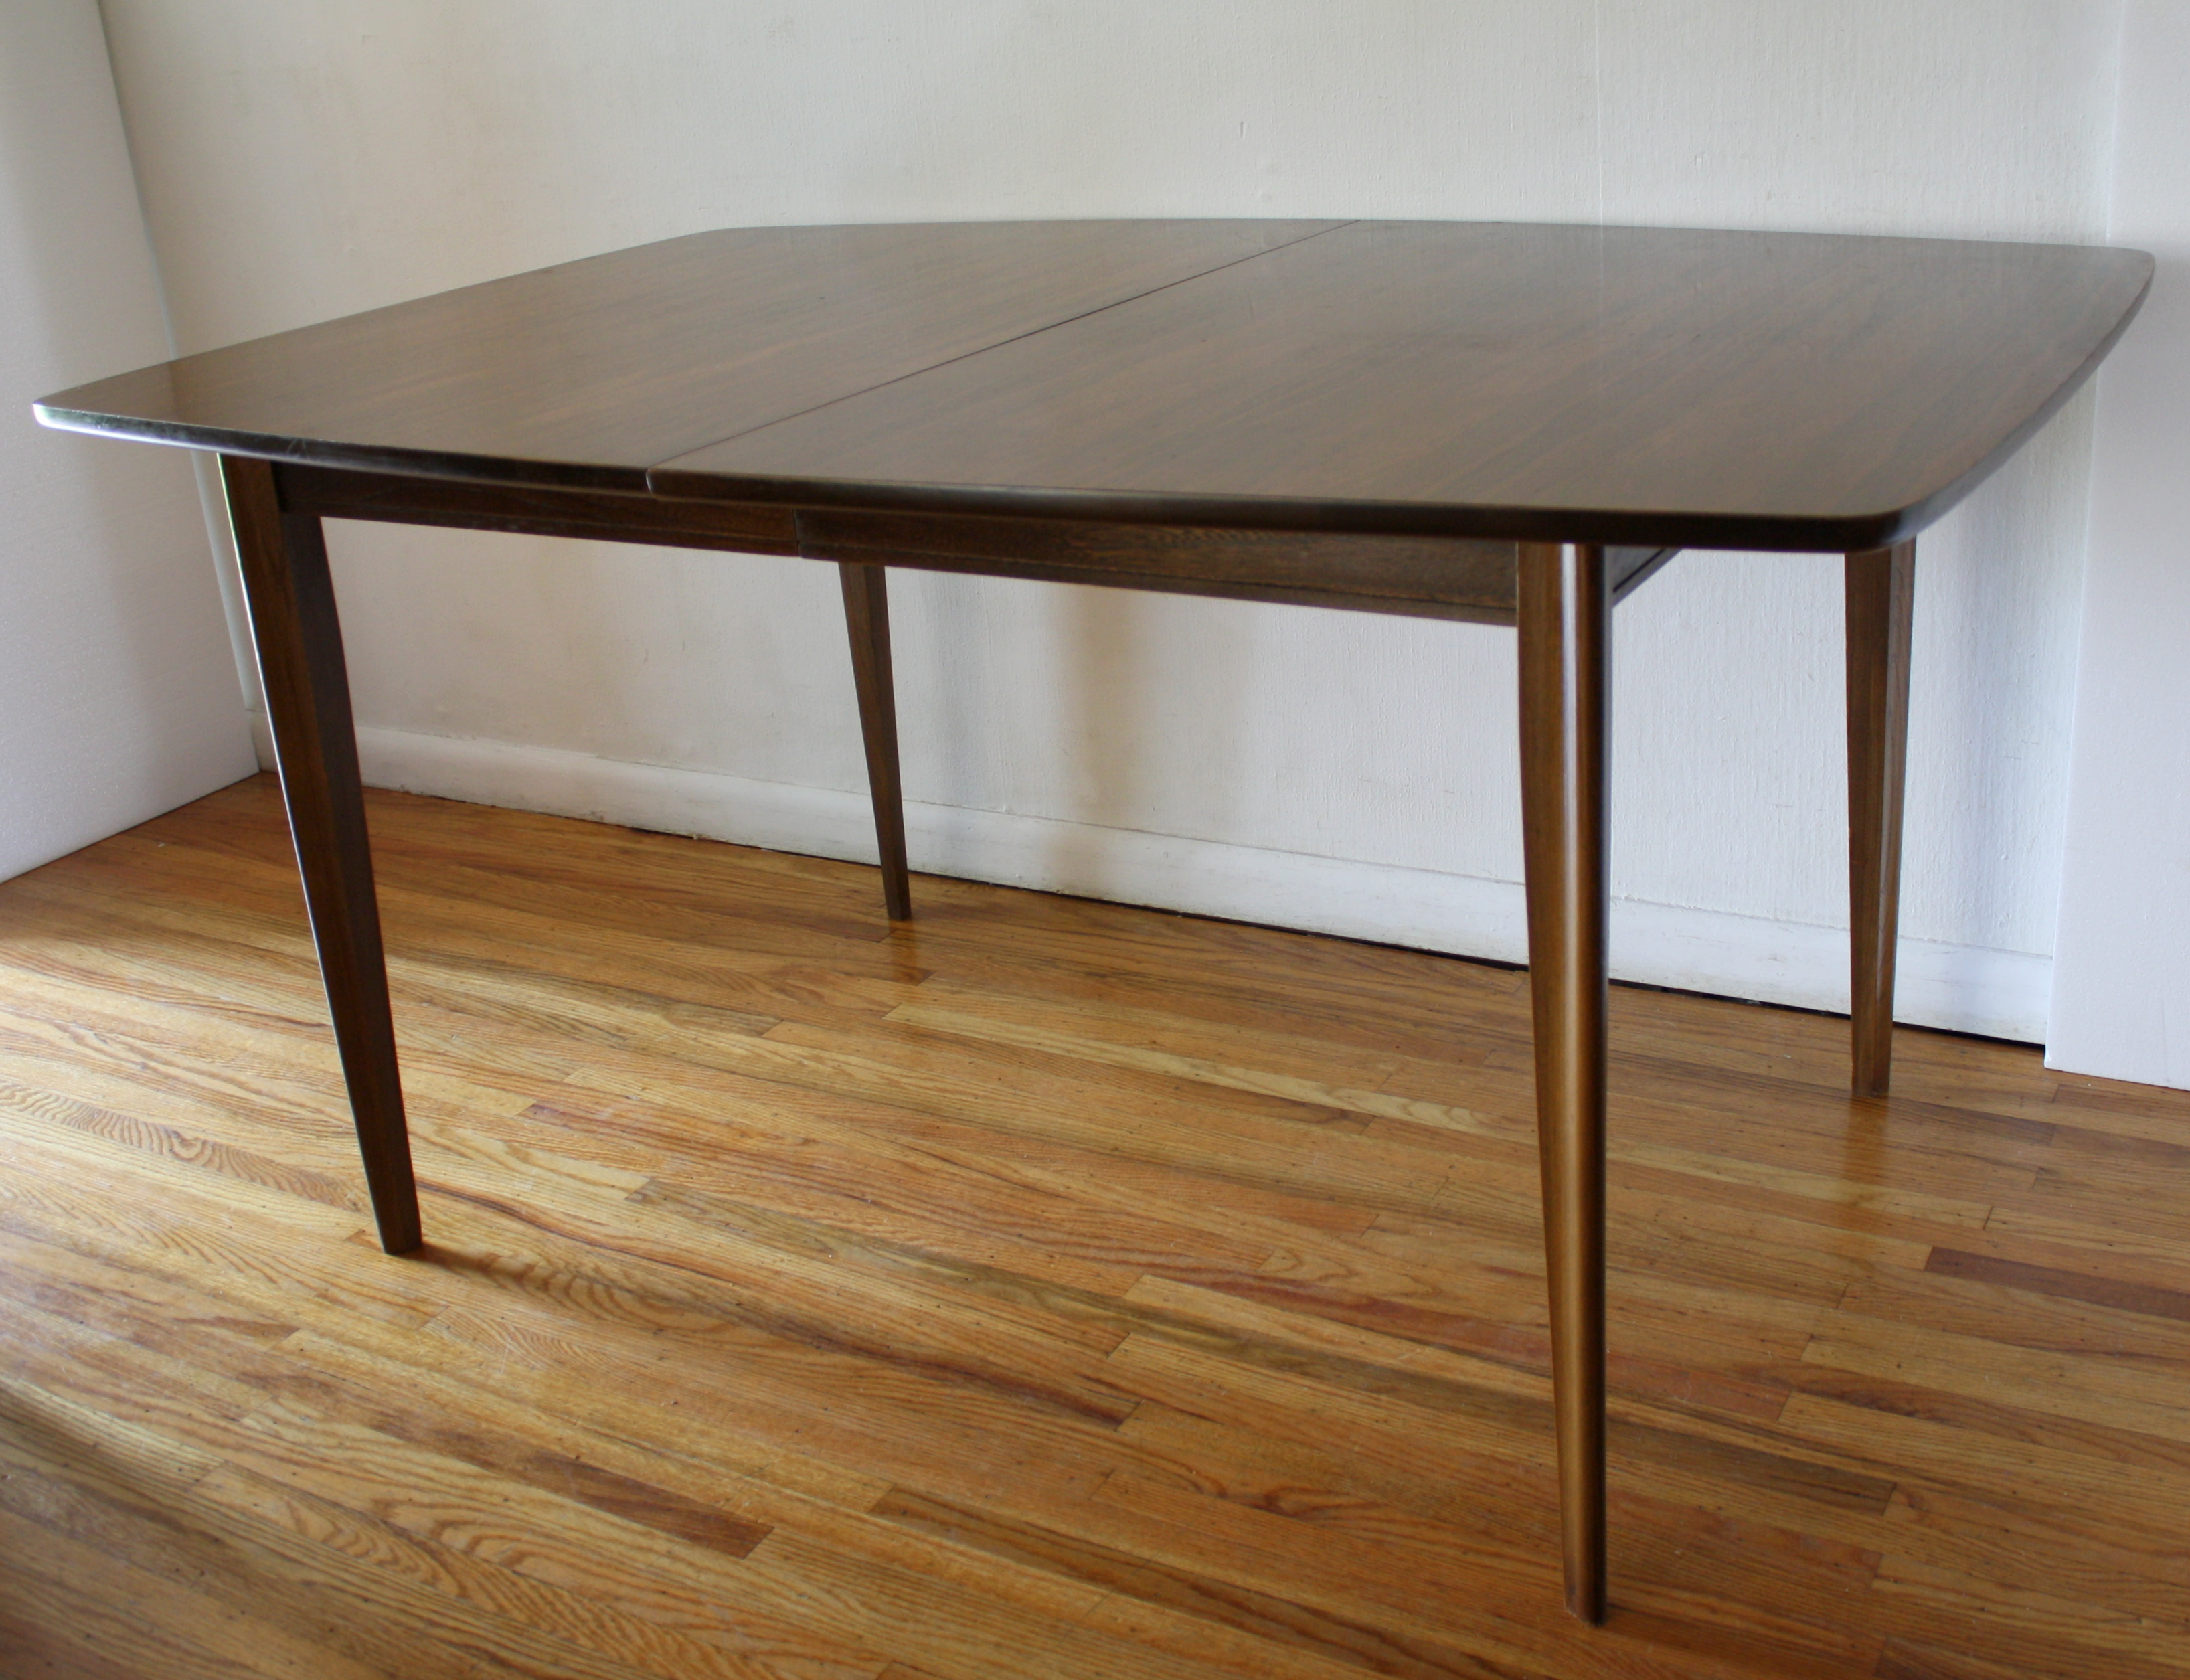 Mid century modern broyhill brasilia dining table picked for Mid century modern dining table